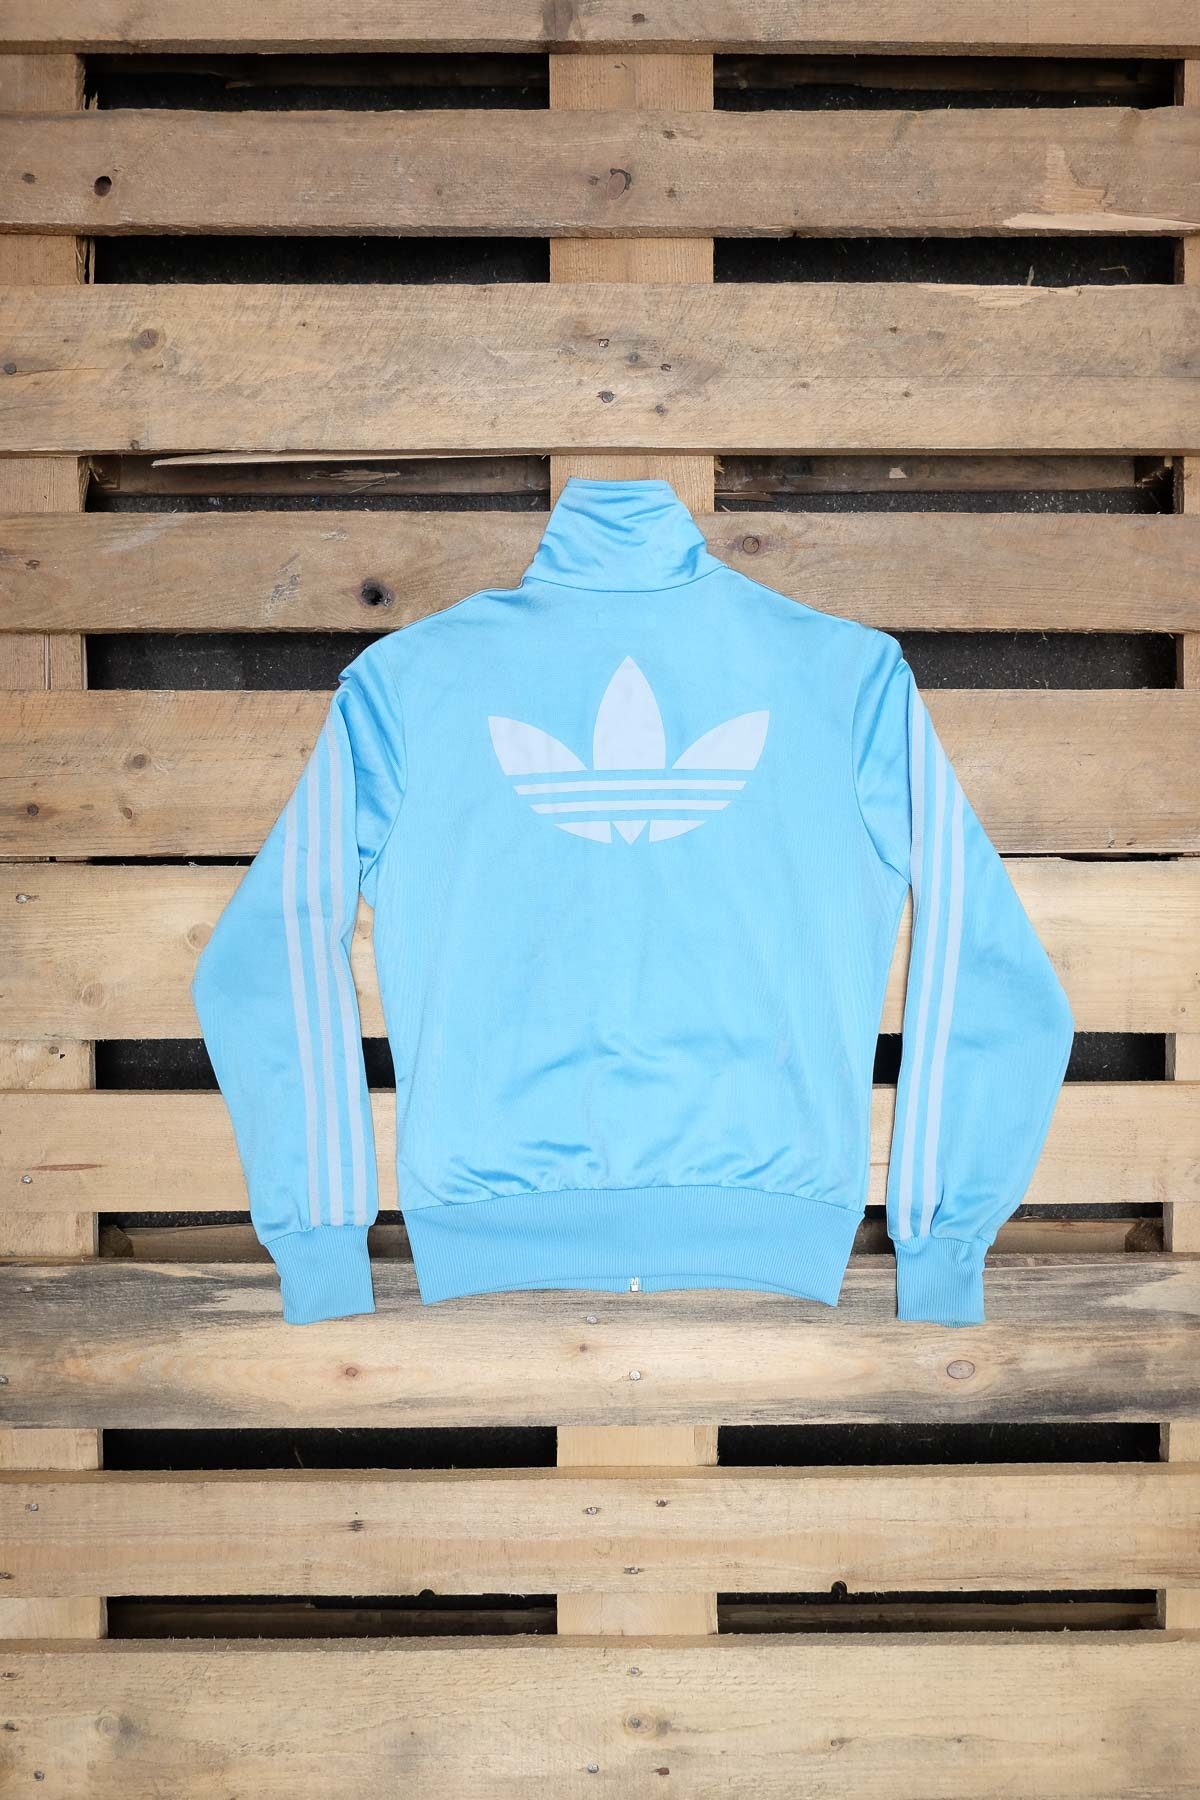 Adidas Original FELPA VINTAGE Light Blue